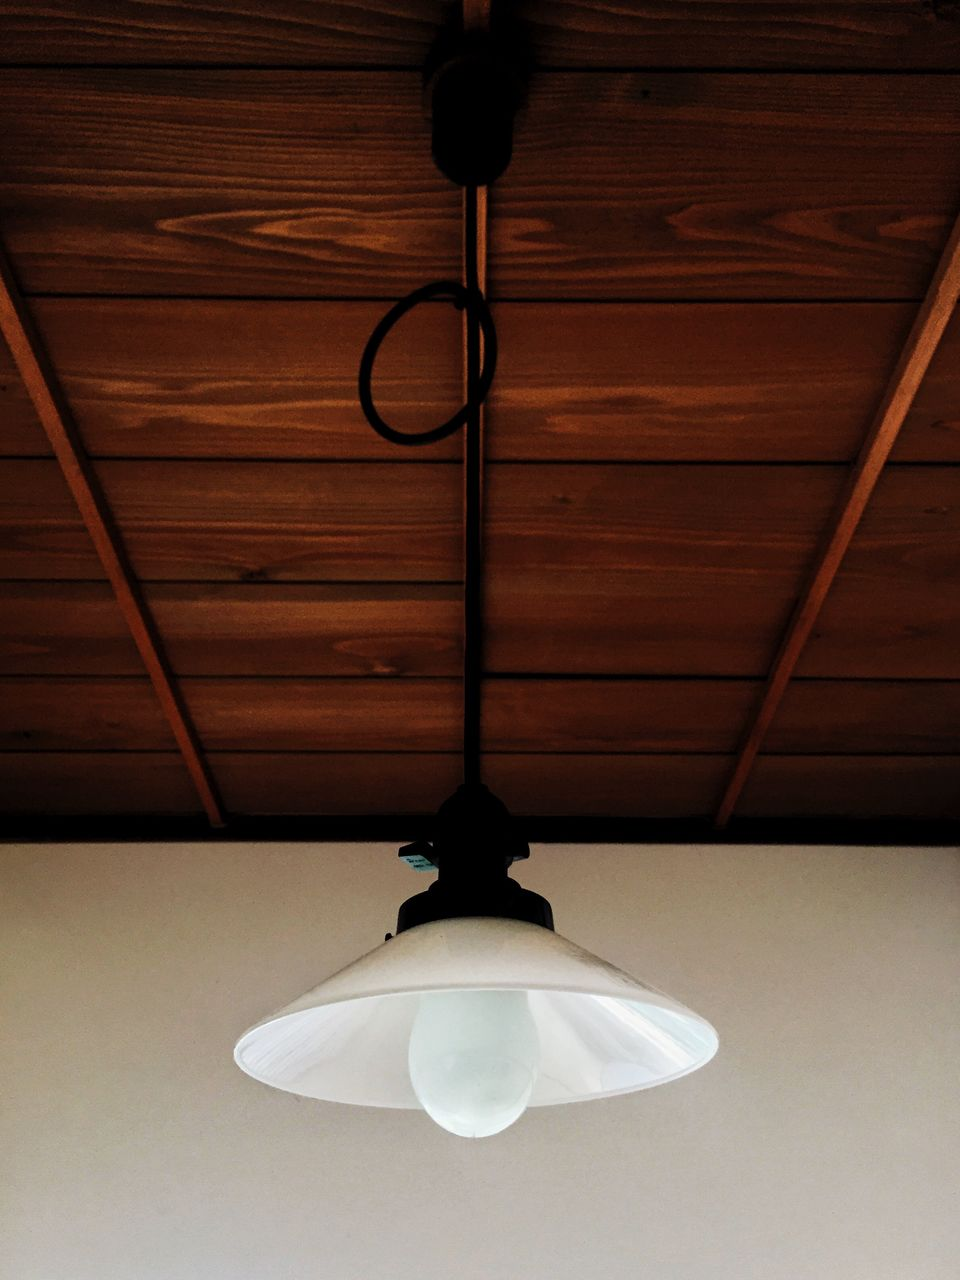 Low Angle View Of Old Lighting Equipment Hanging From Ceiling At Home